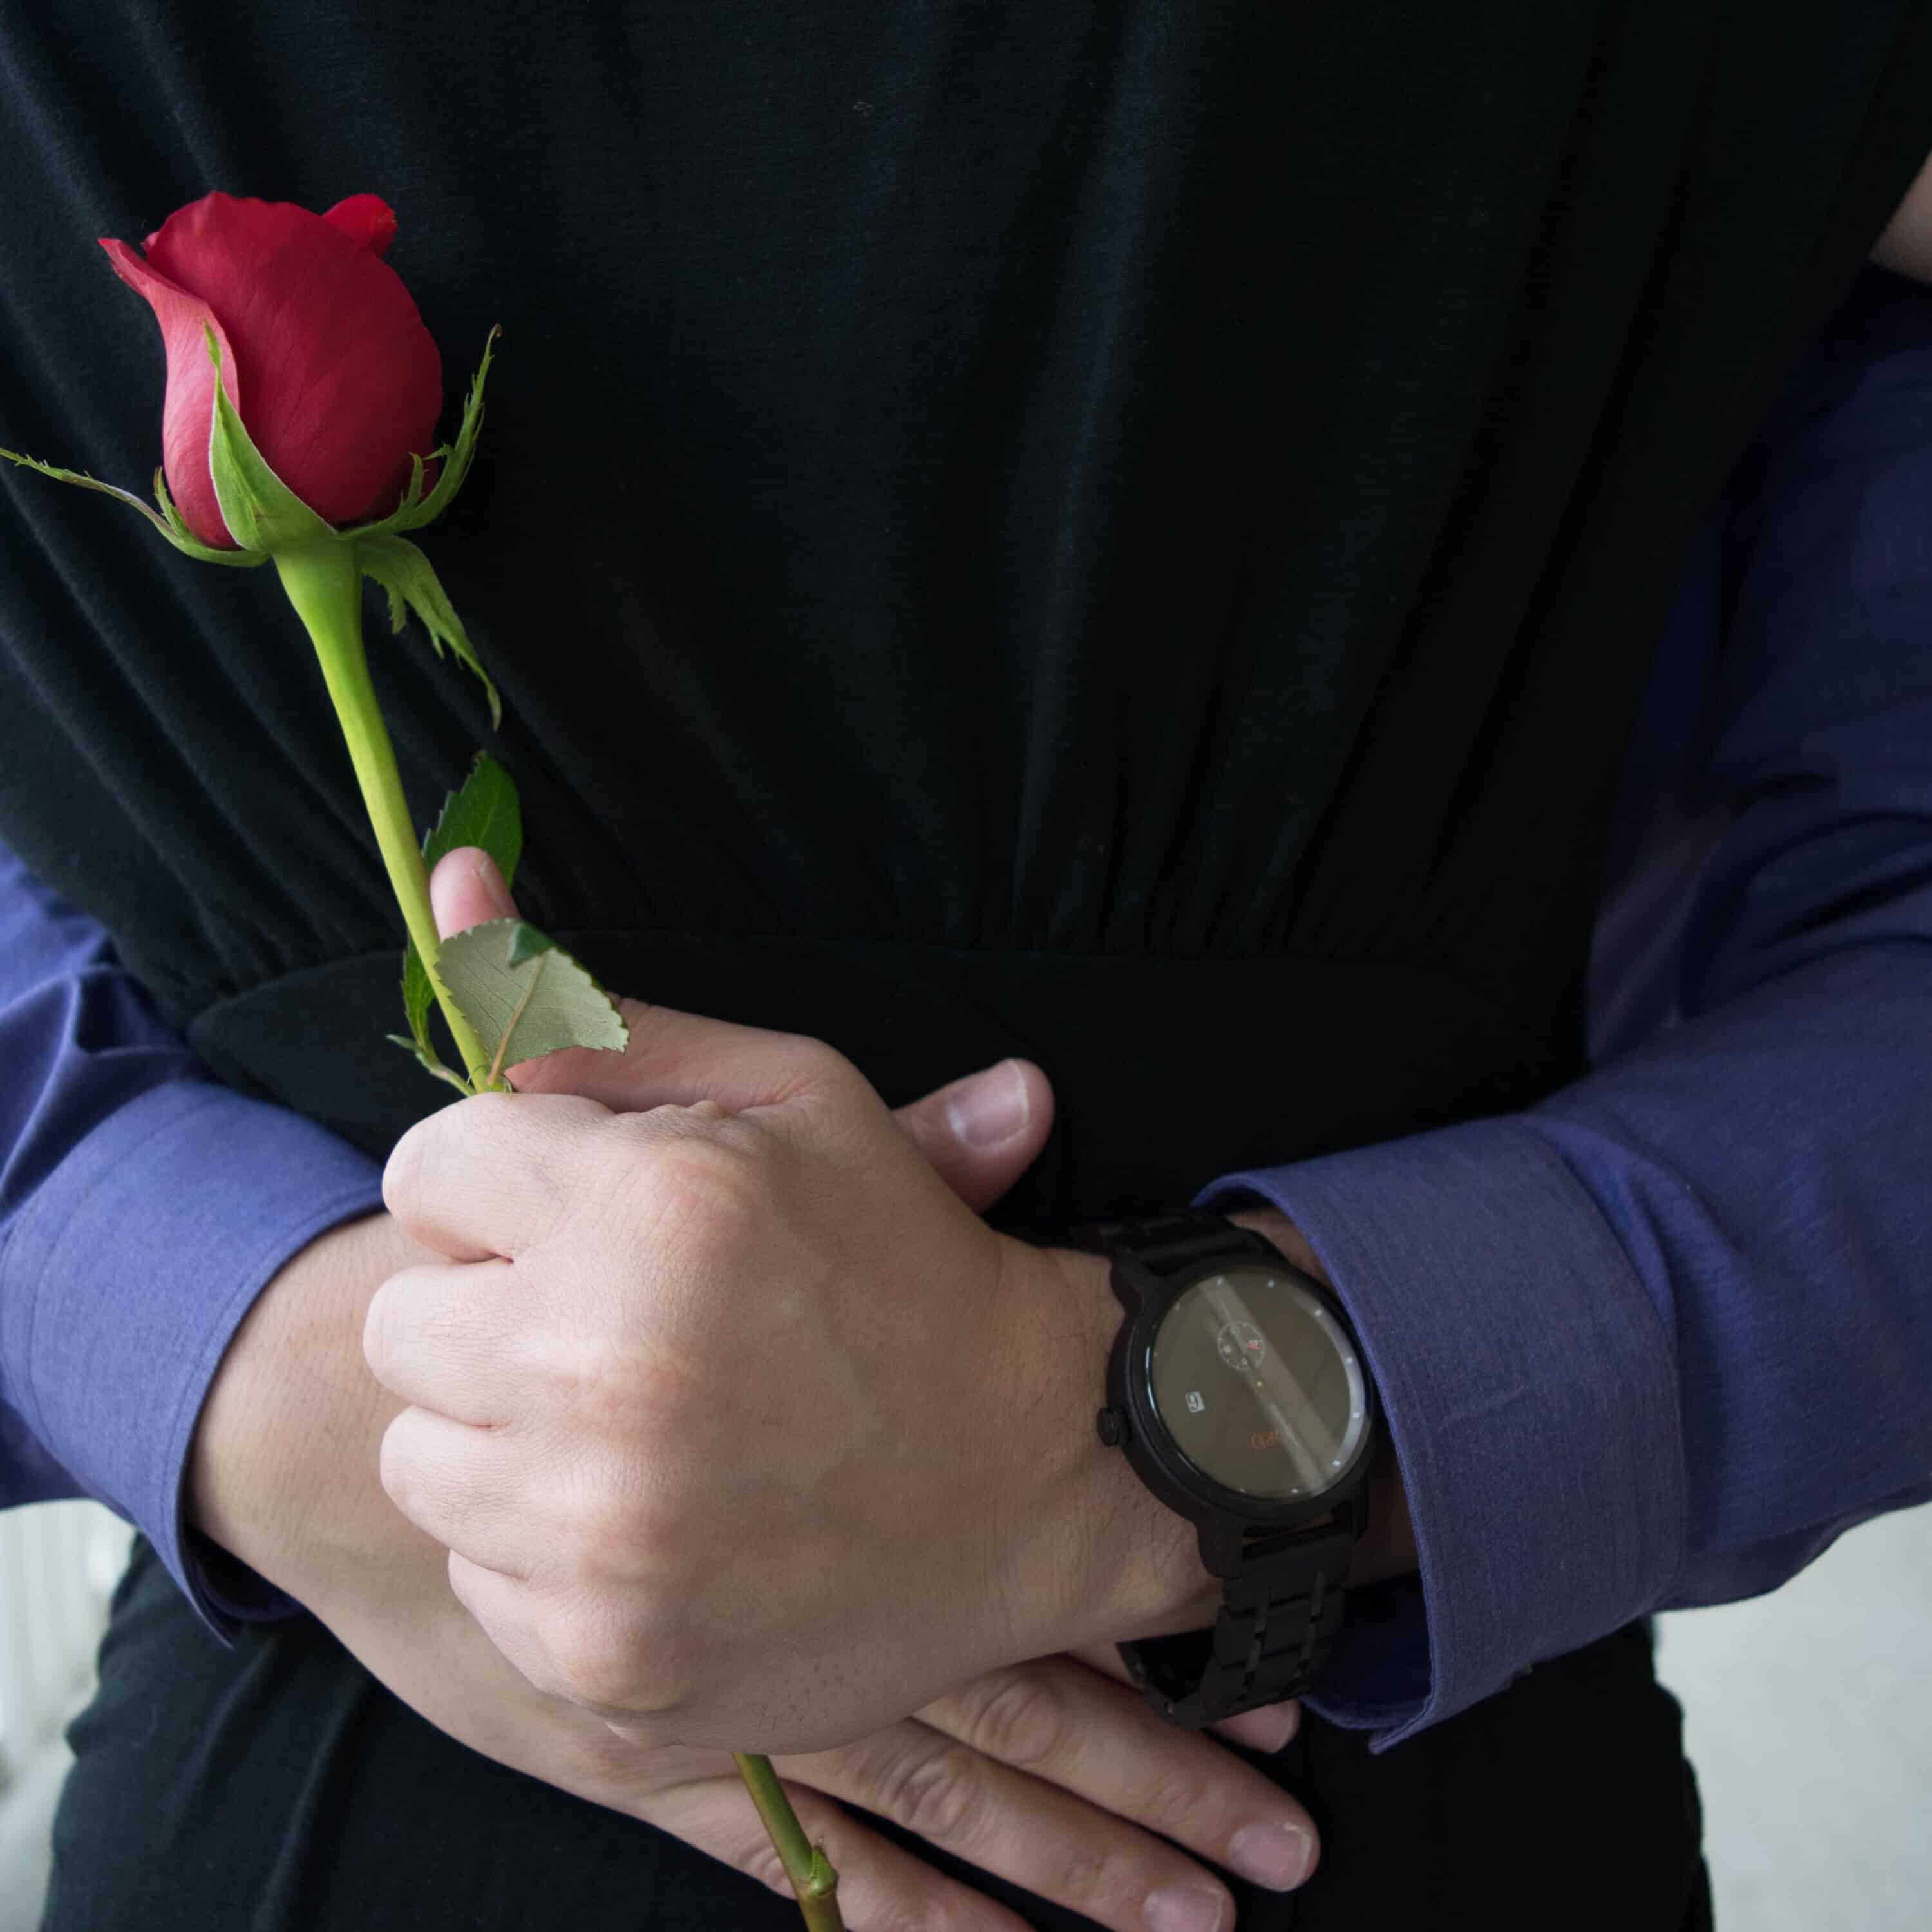 Man holding rose while hugging wife - Valentine's Day Gift for Him